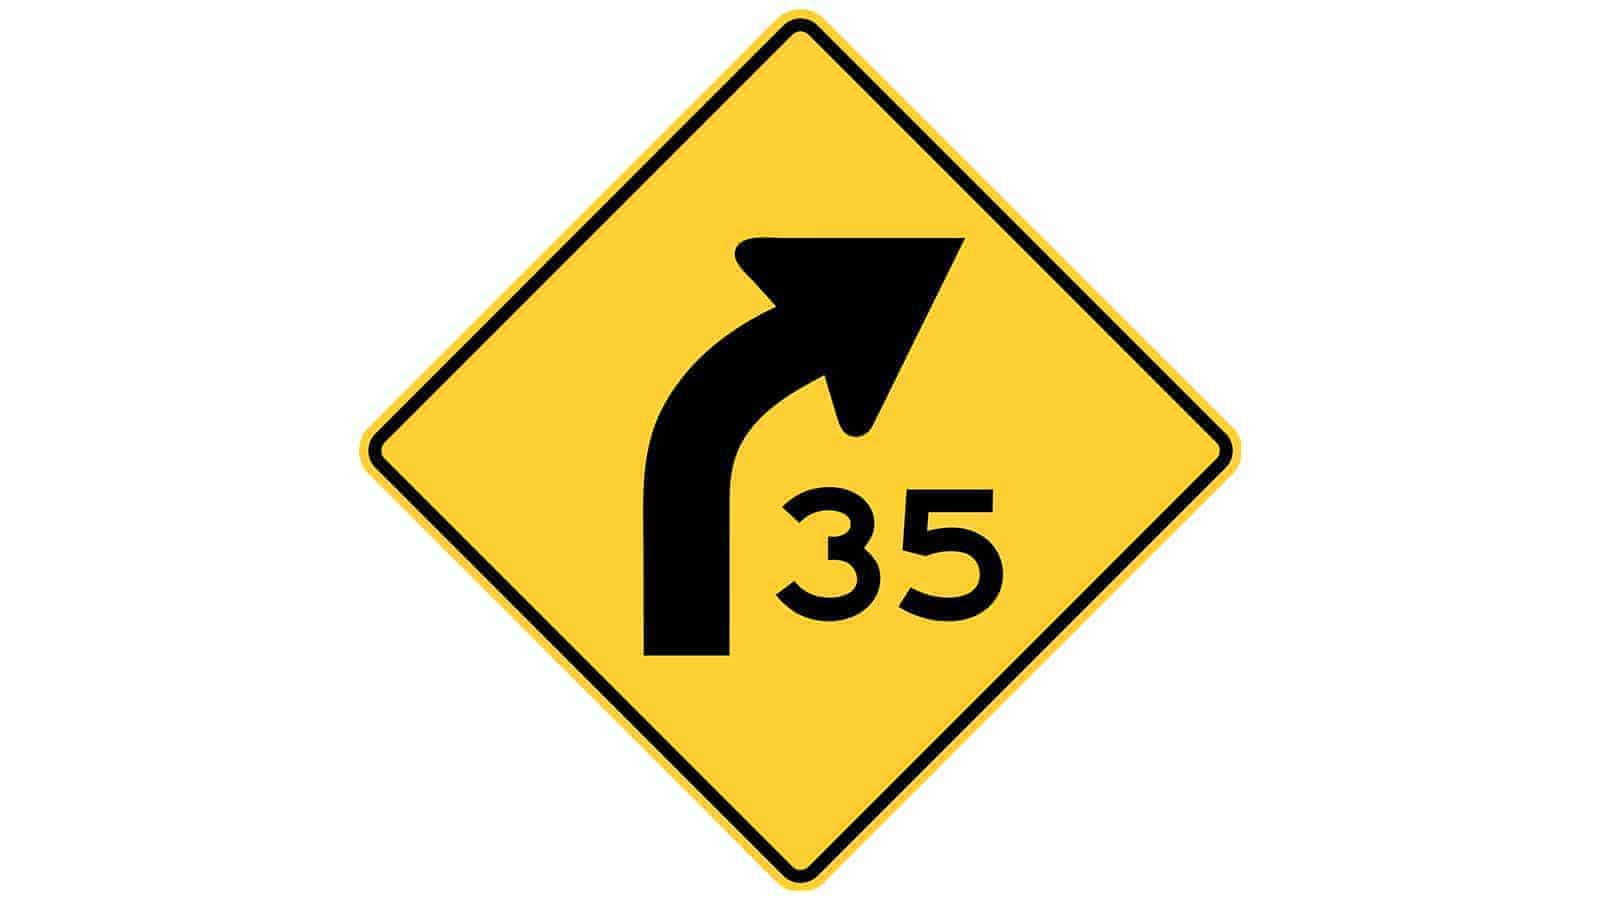 Warning sign curve to the right with advisory speed